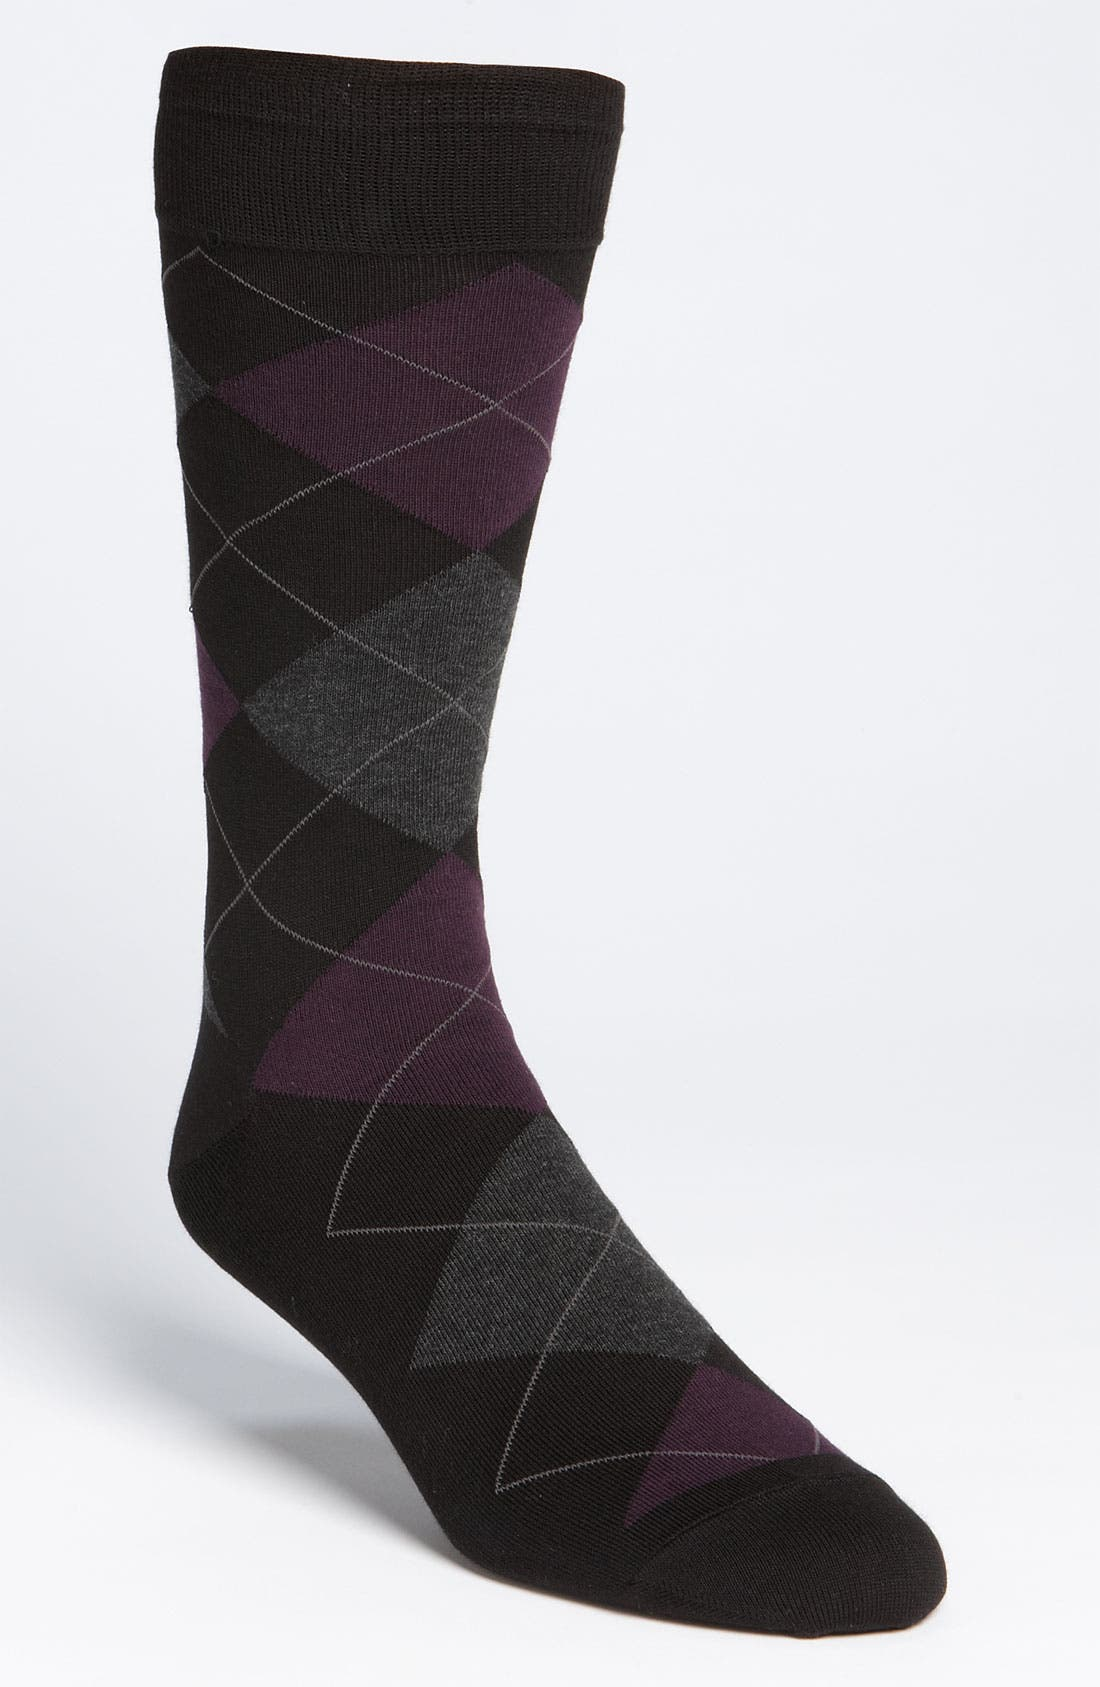 Main Image - Cole Haan 'New Argyle' Socks